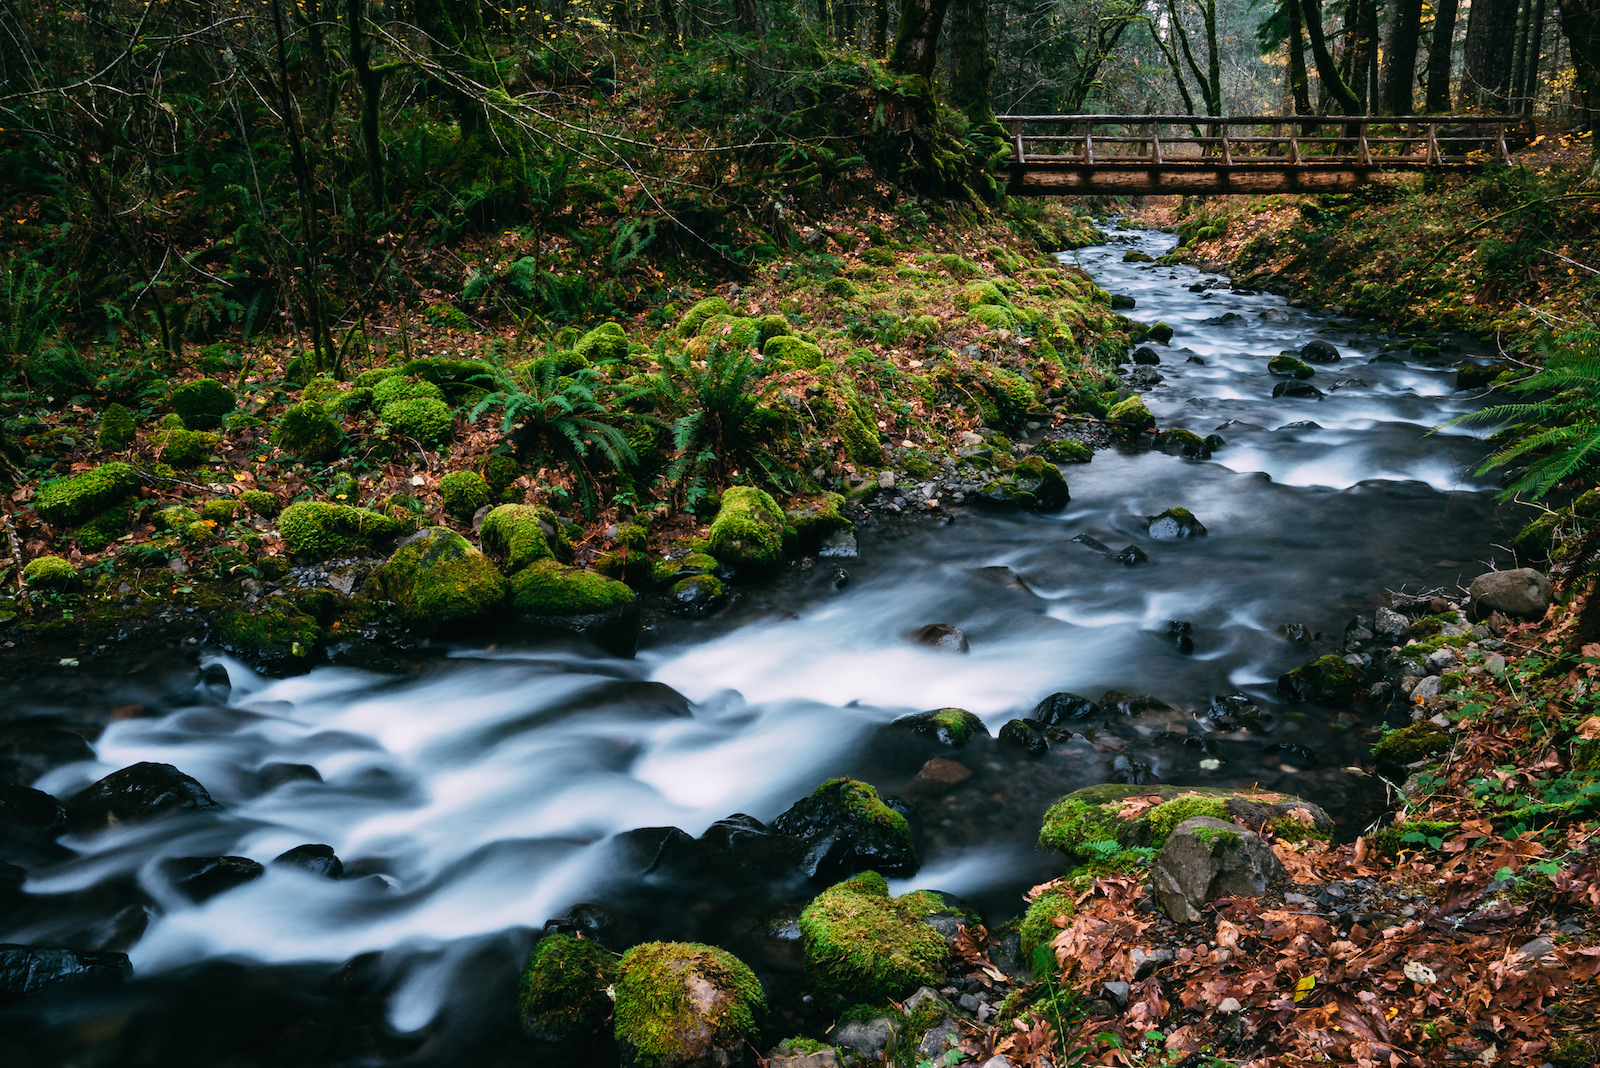 How to Use Long Exposures to Expertly Photograph Landscapes